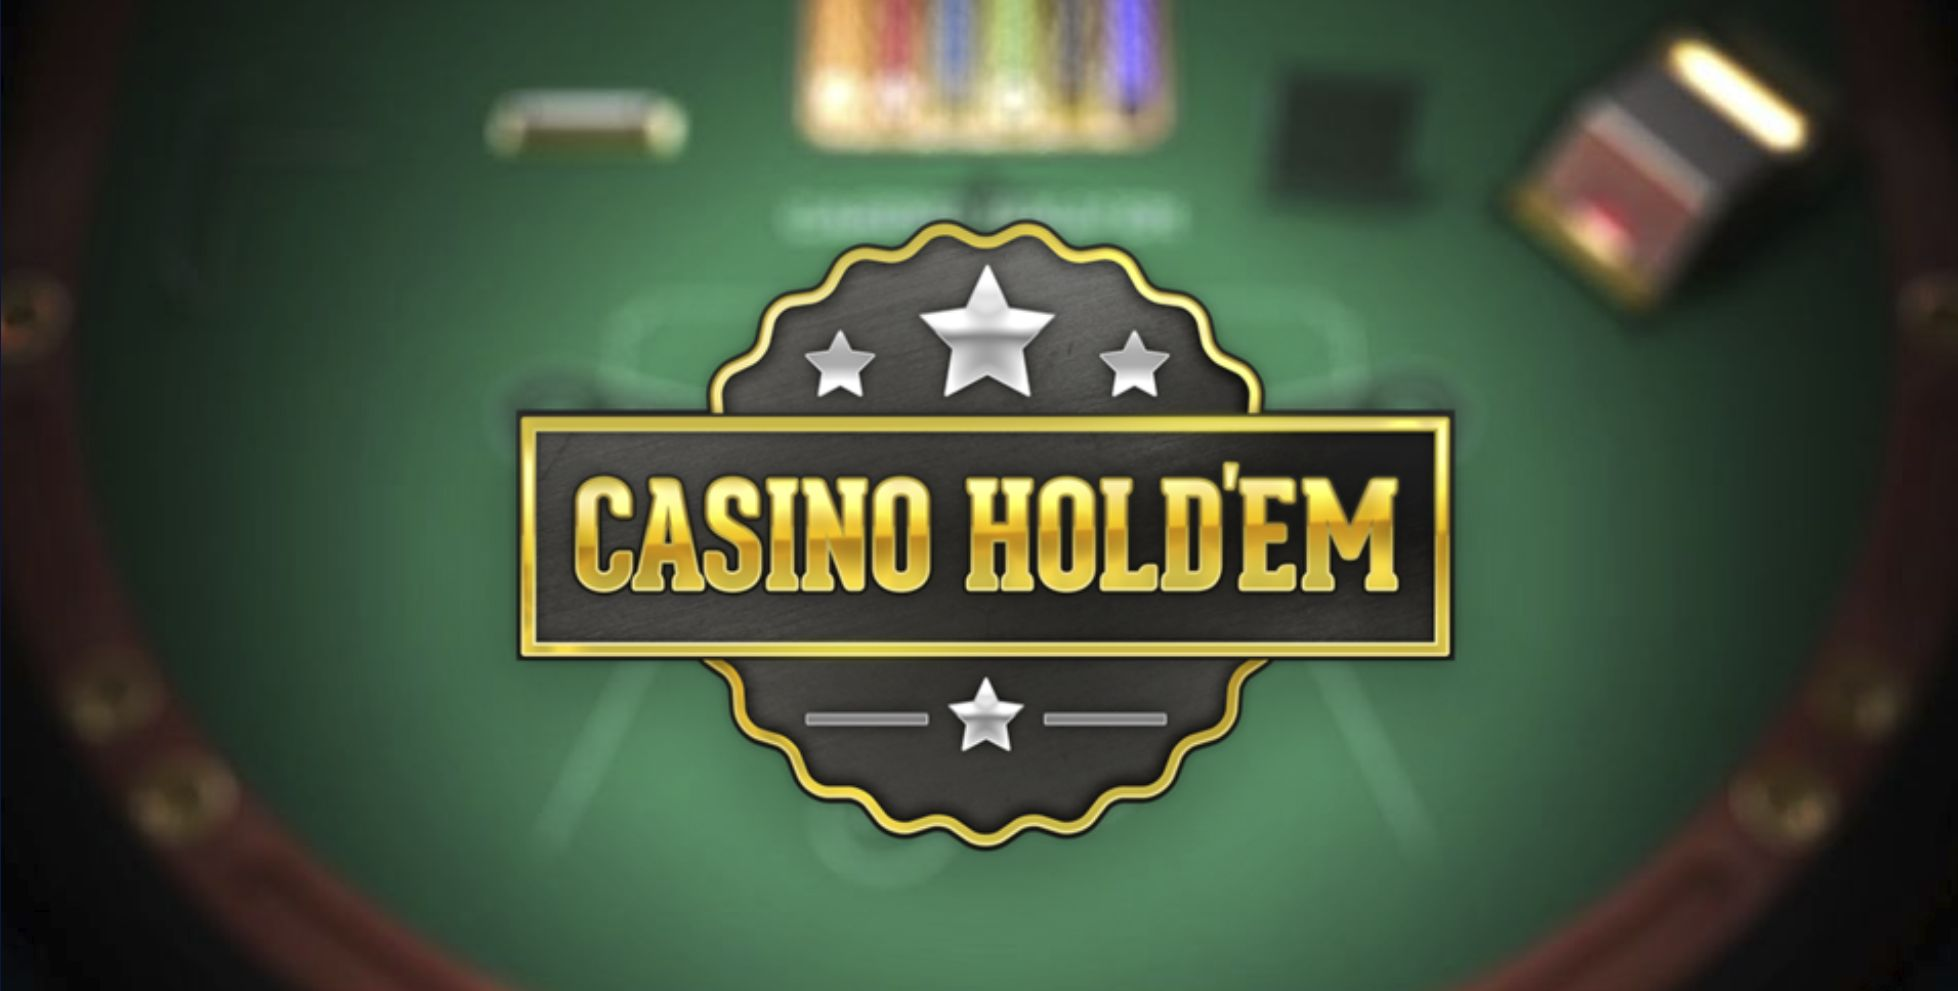 online Casino Hold'em Poker online strategy Kazino holdem pokers